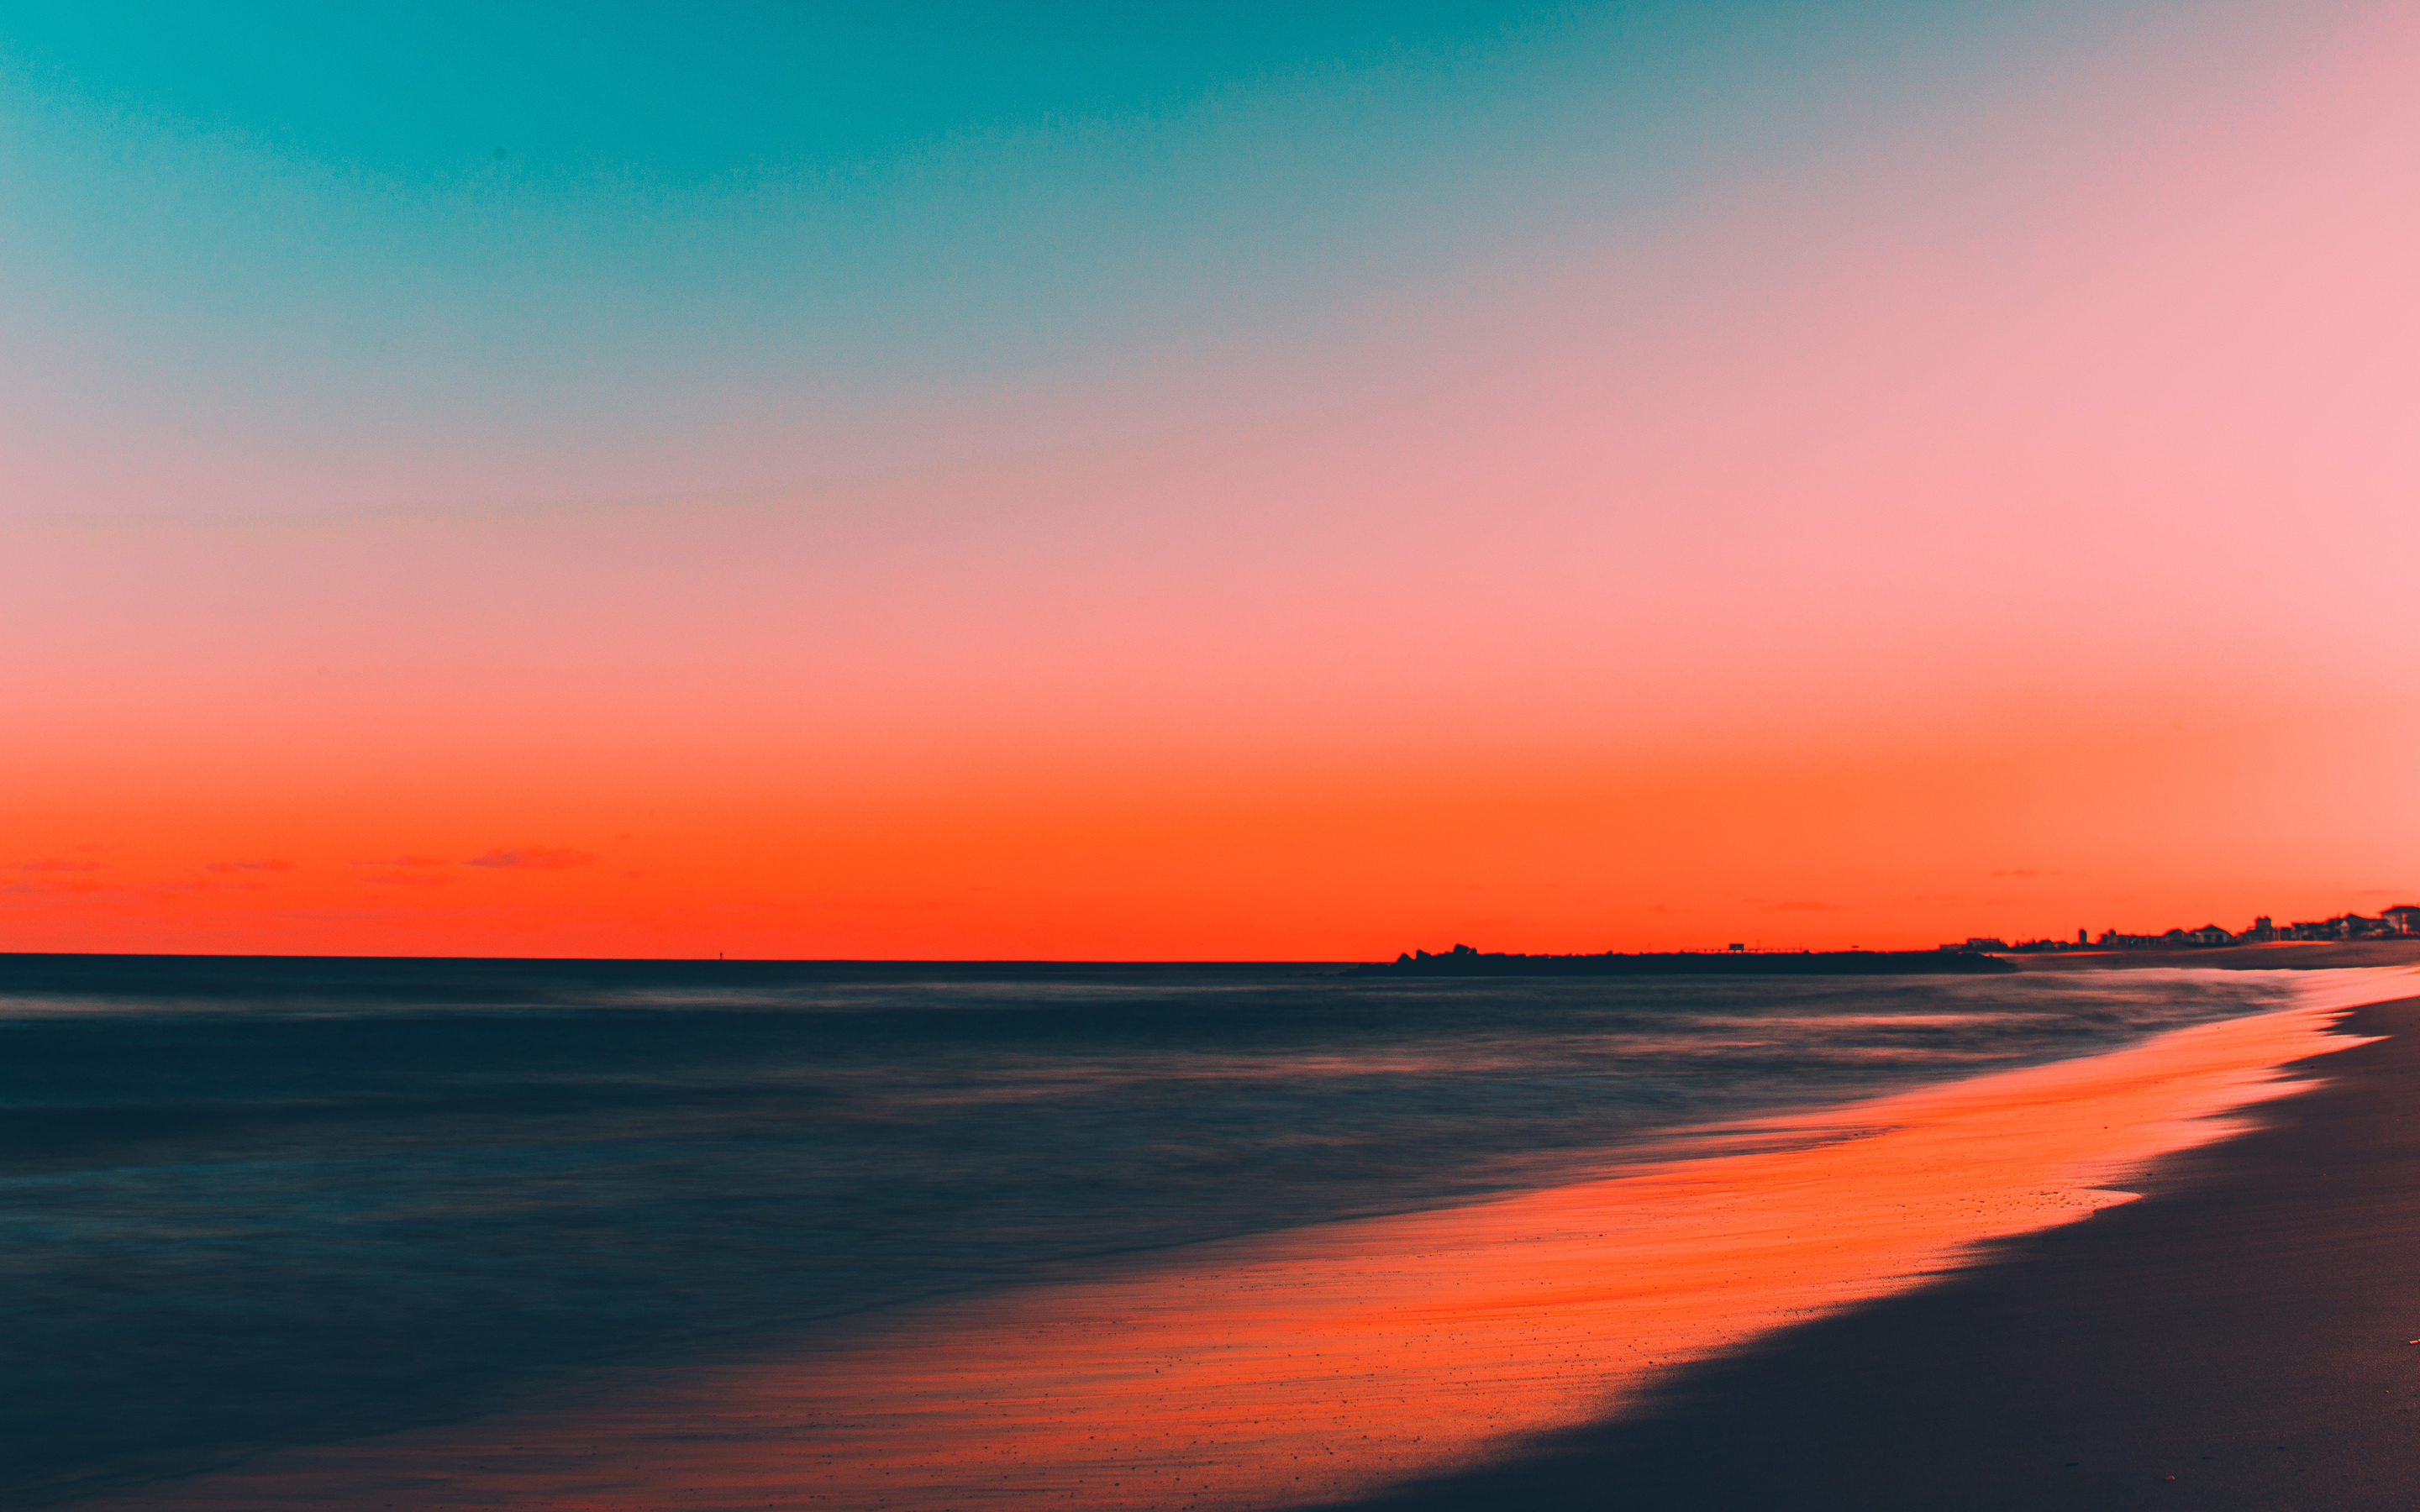 2880x1800 beach sunset 5k macbook pro retina hd 4k wallpapers